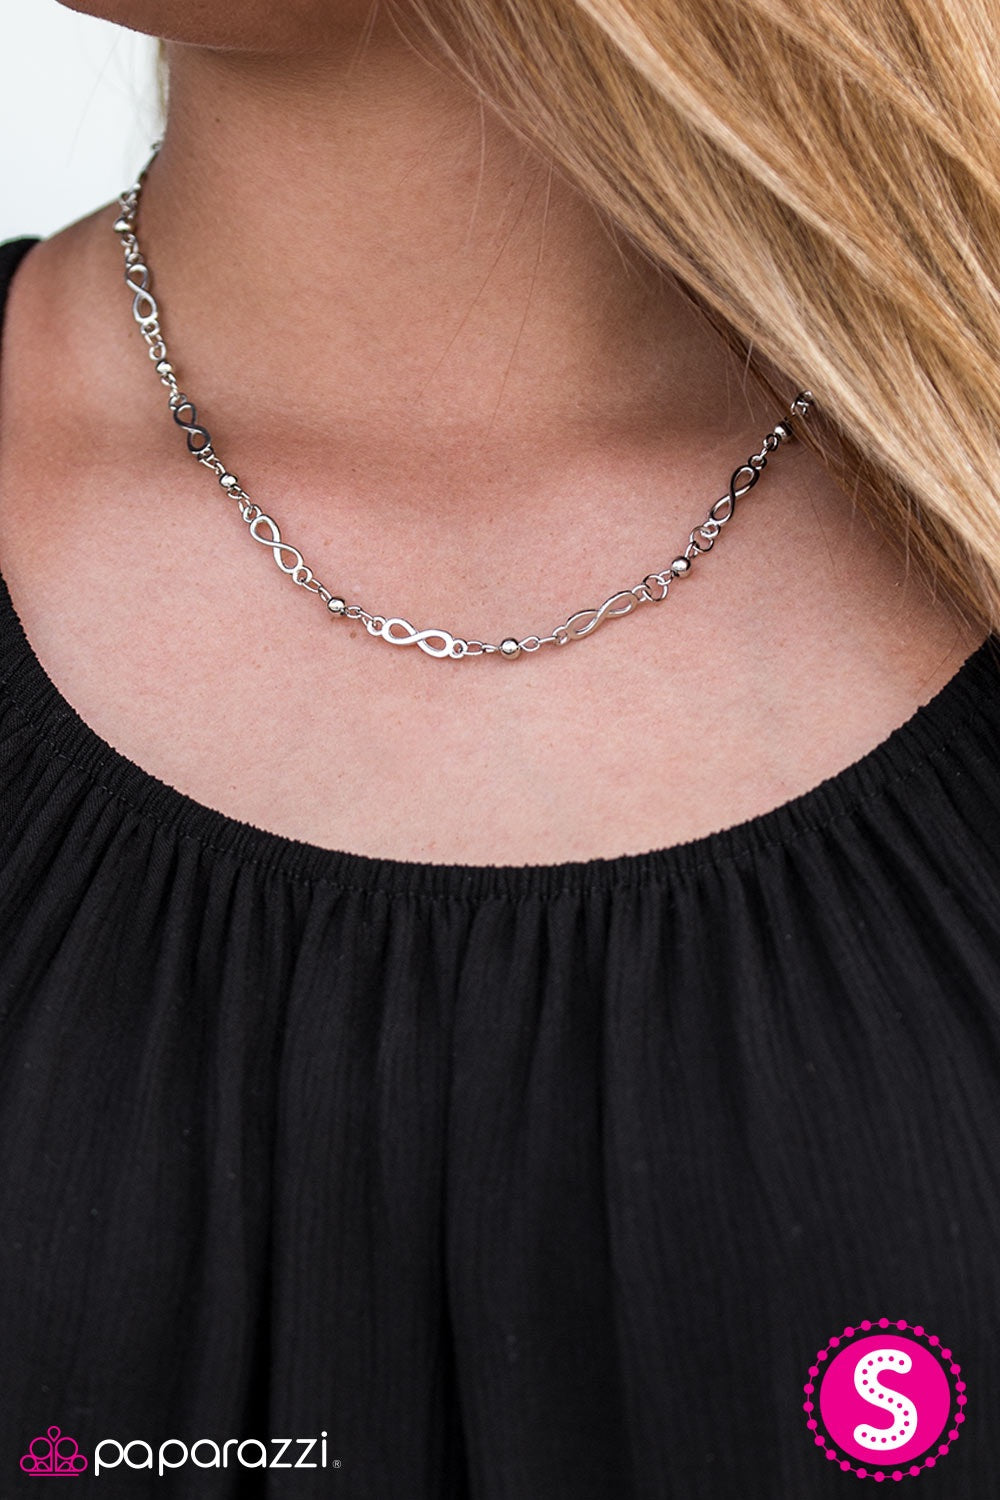 Paparazzi Jewelry Necklace Infinite Beauty - Silver